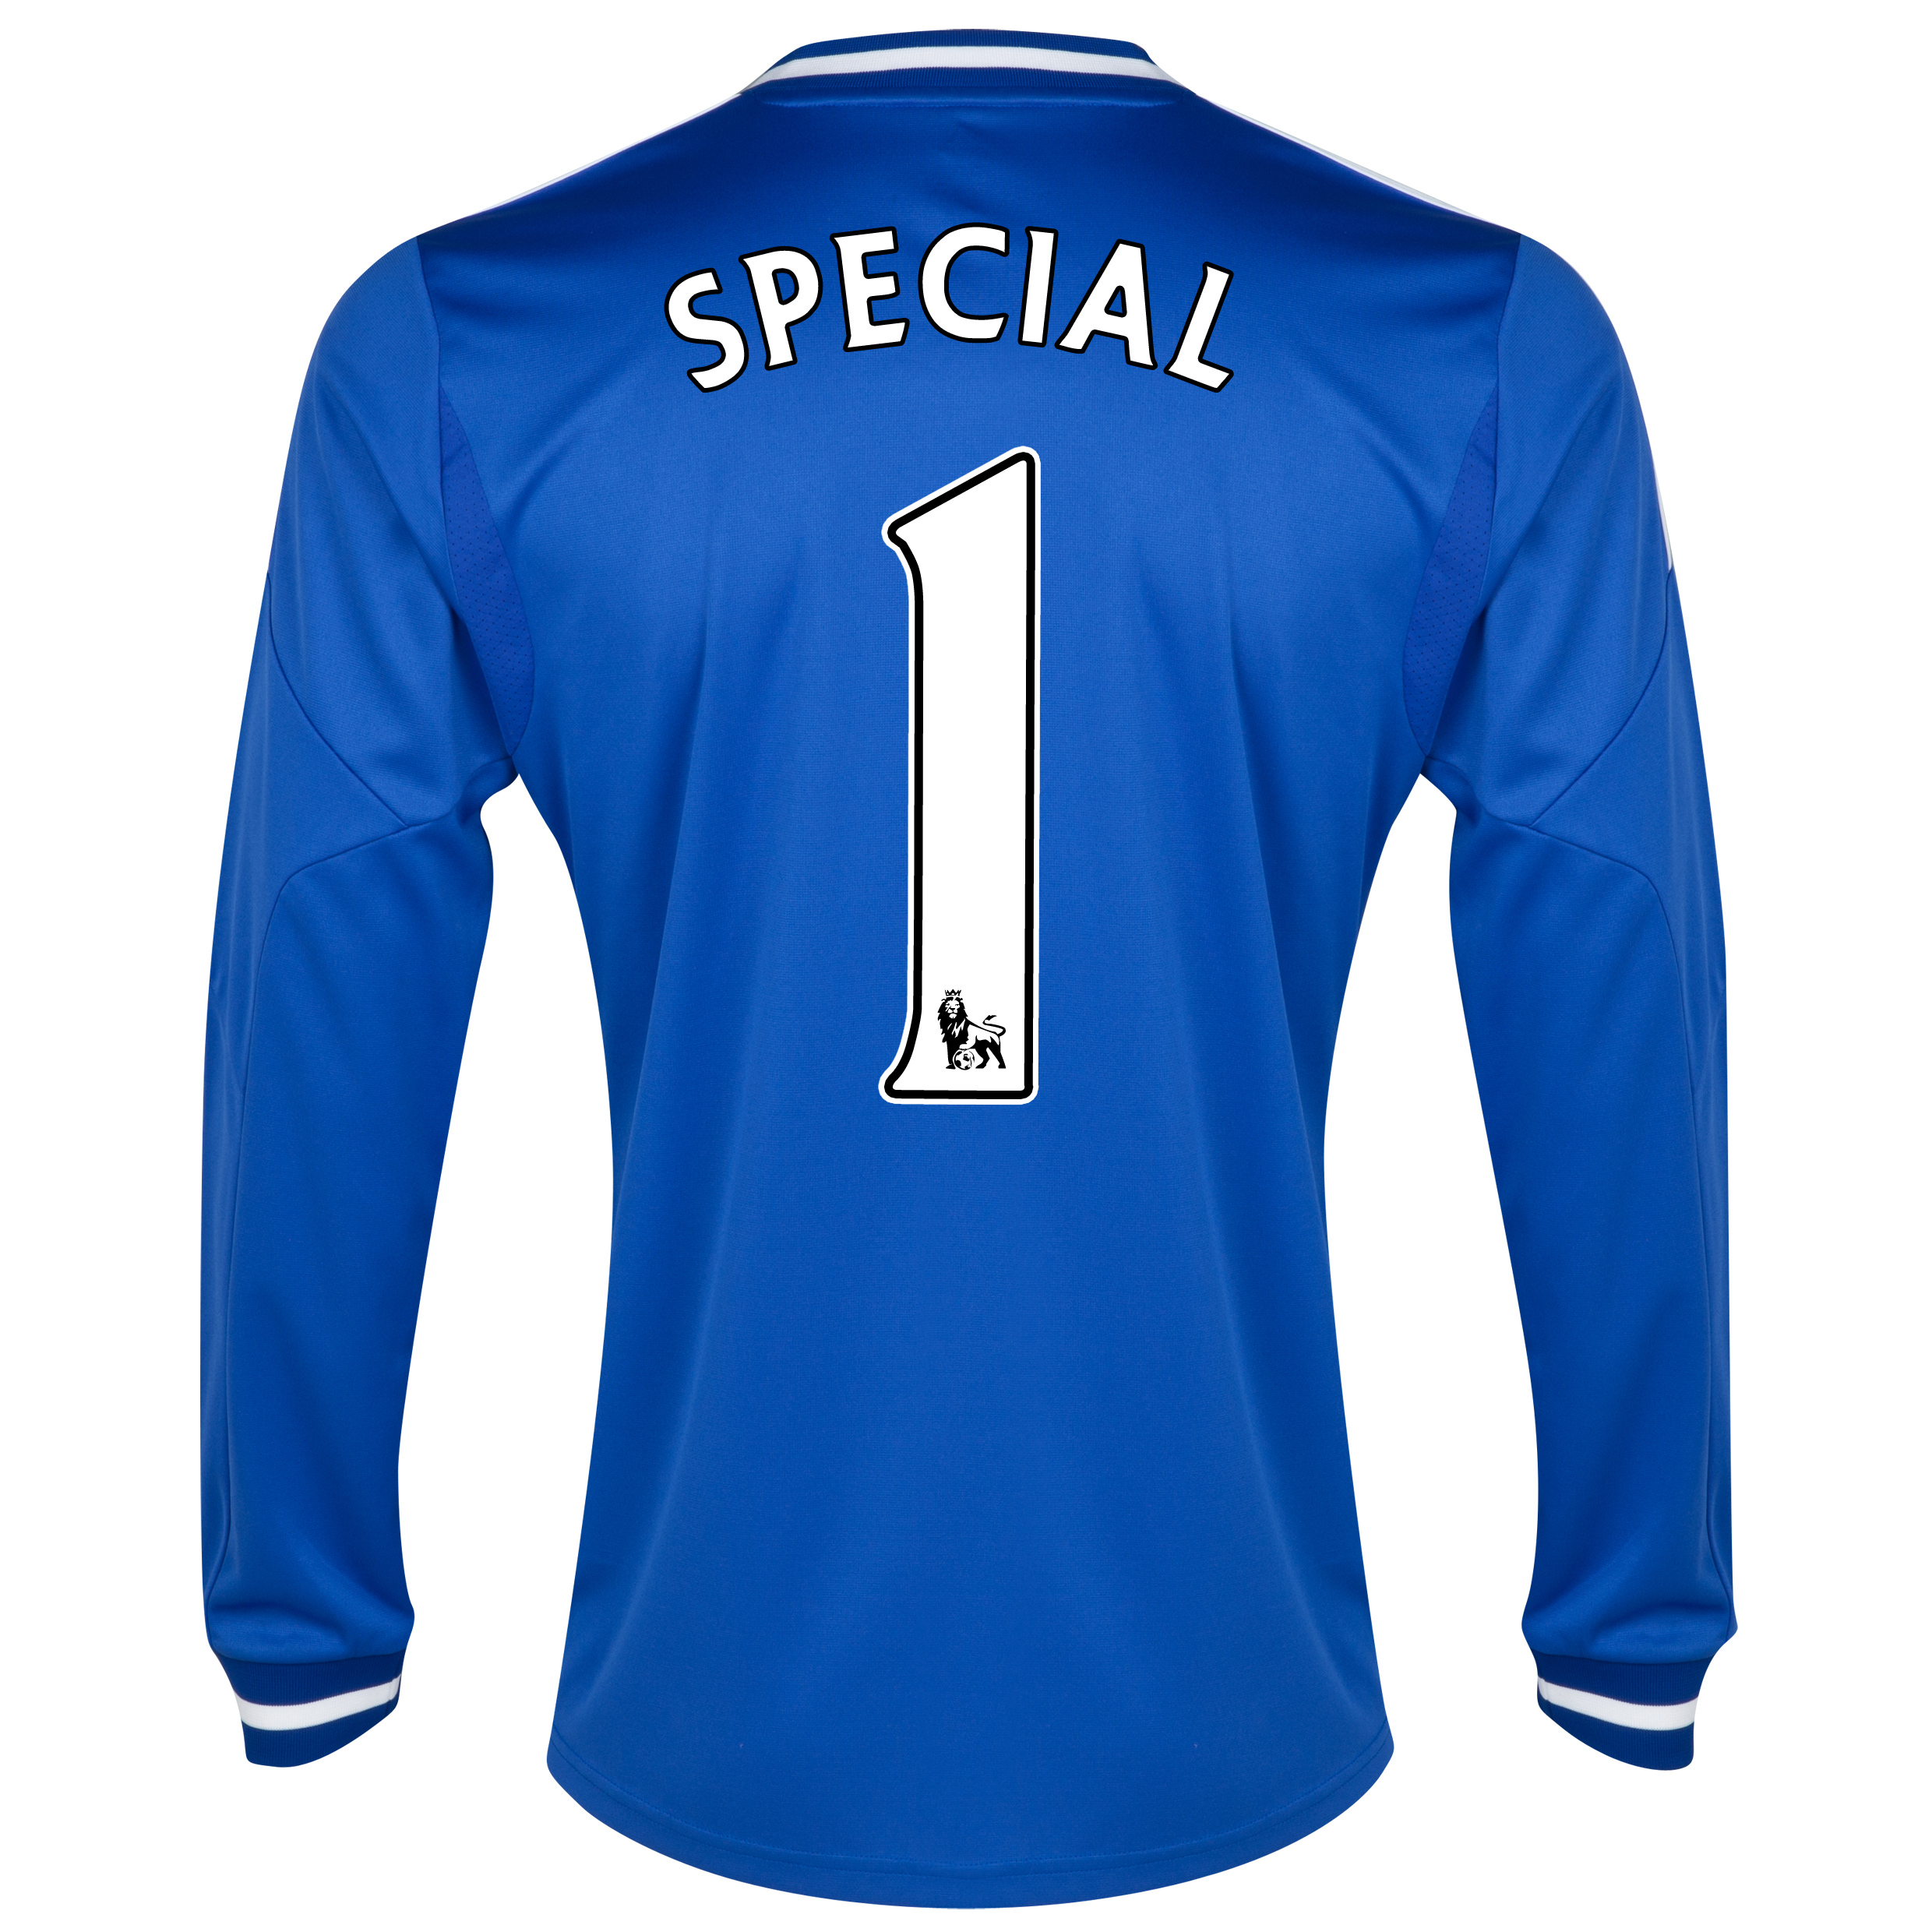 Chelsea Home Shirt 2013/14 - Long Sleeve - Kids with Special 1 printing